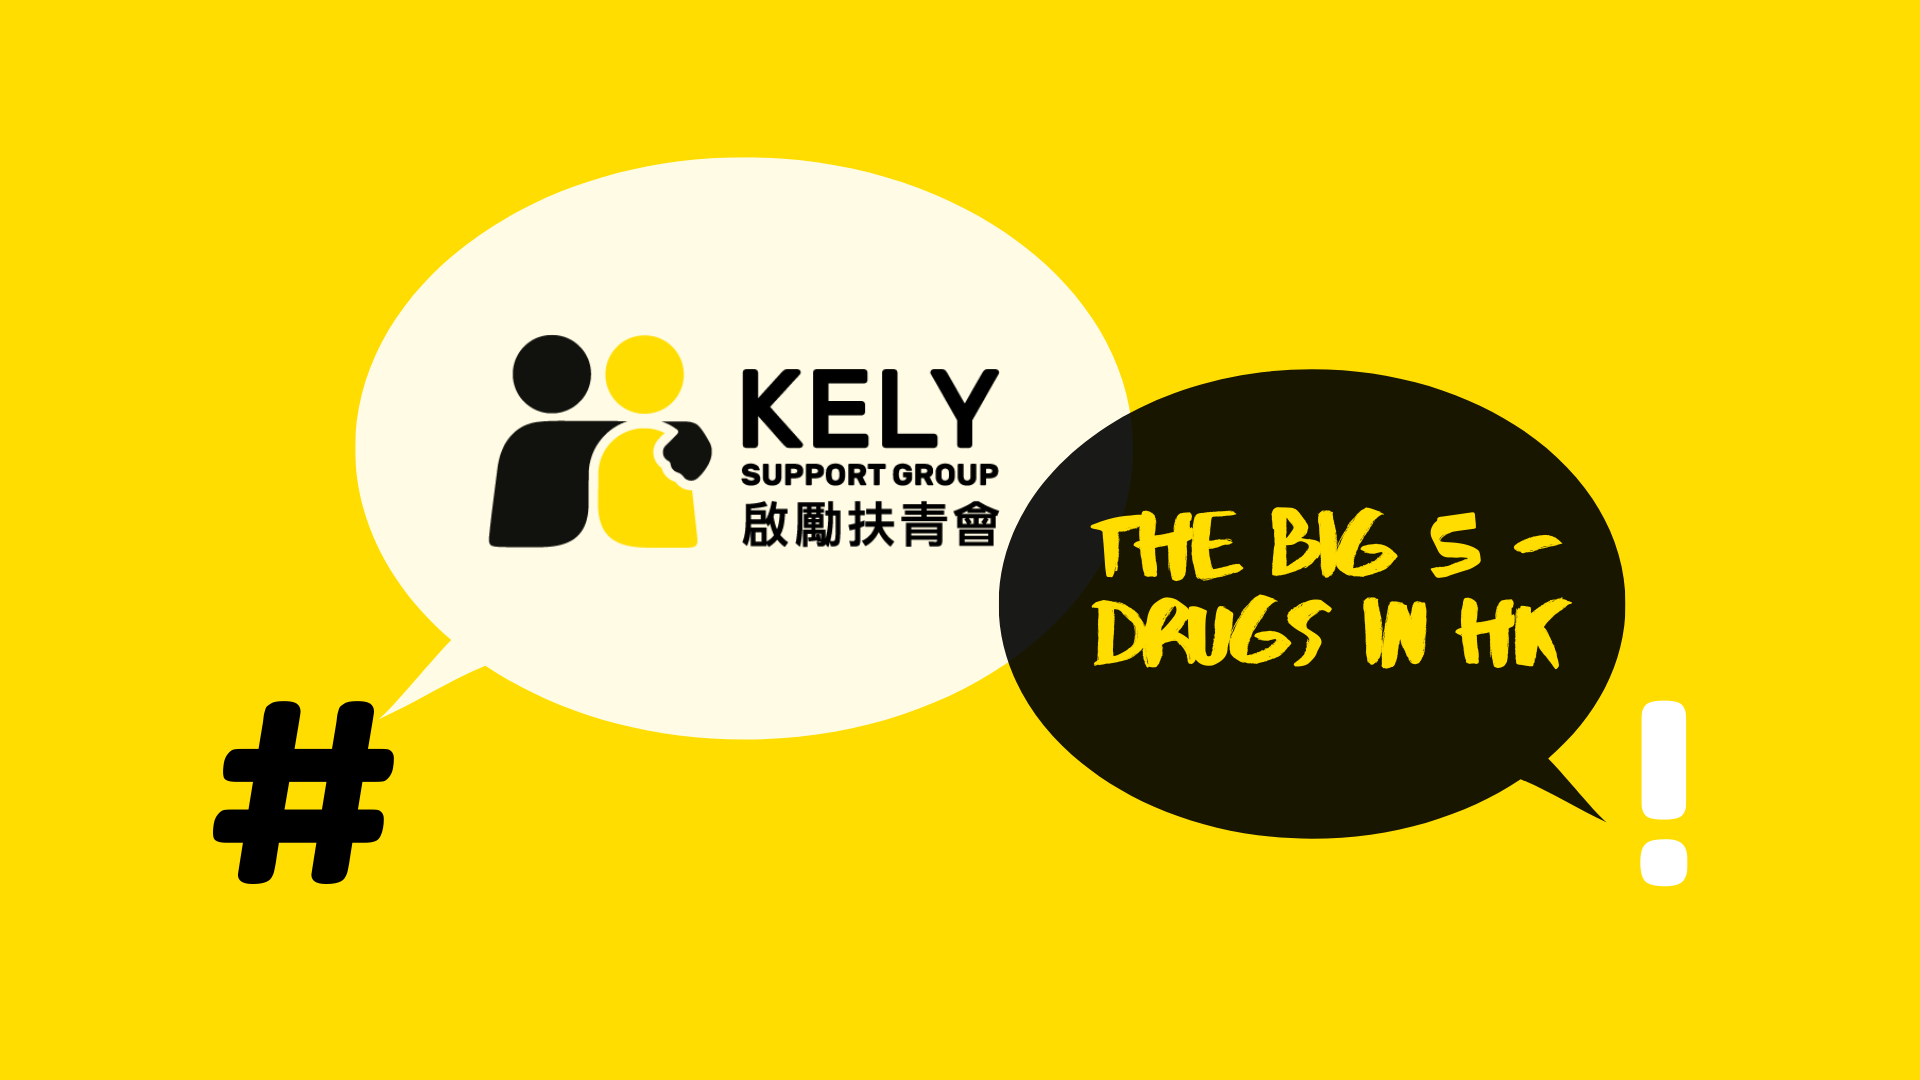 The-Big-5-Drugs-in-HK.png#asset:2853